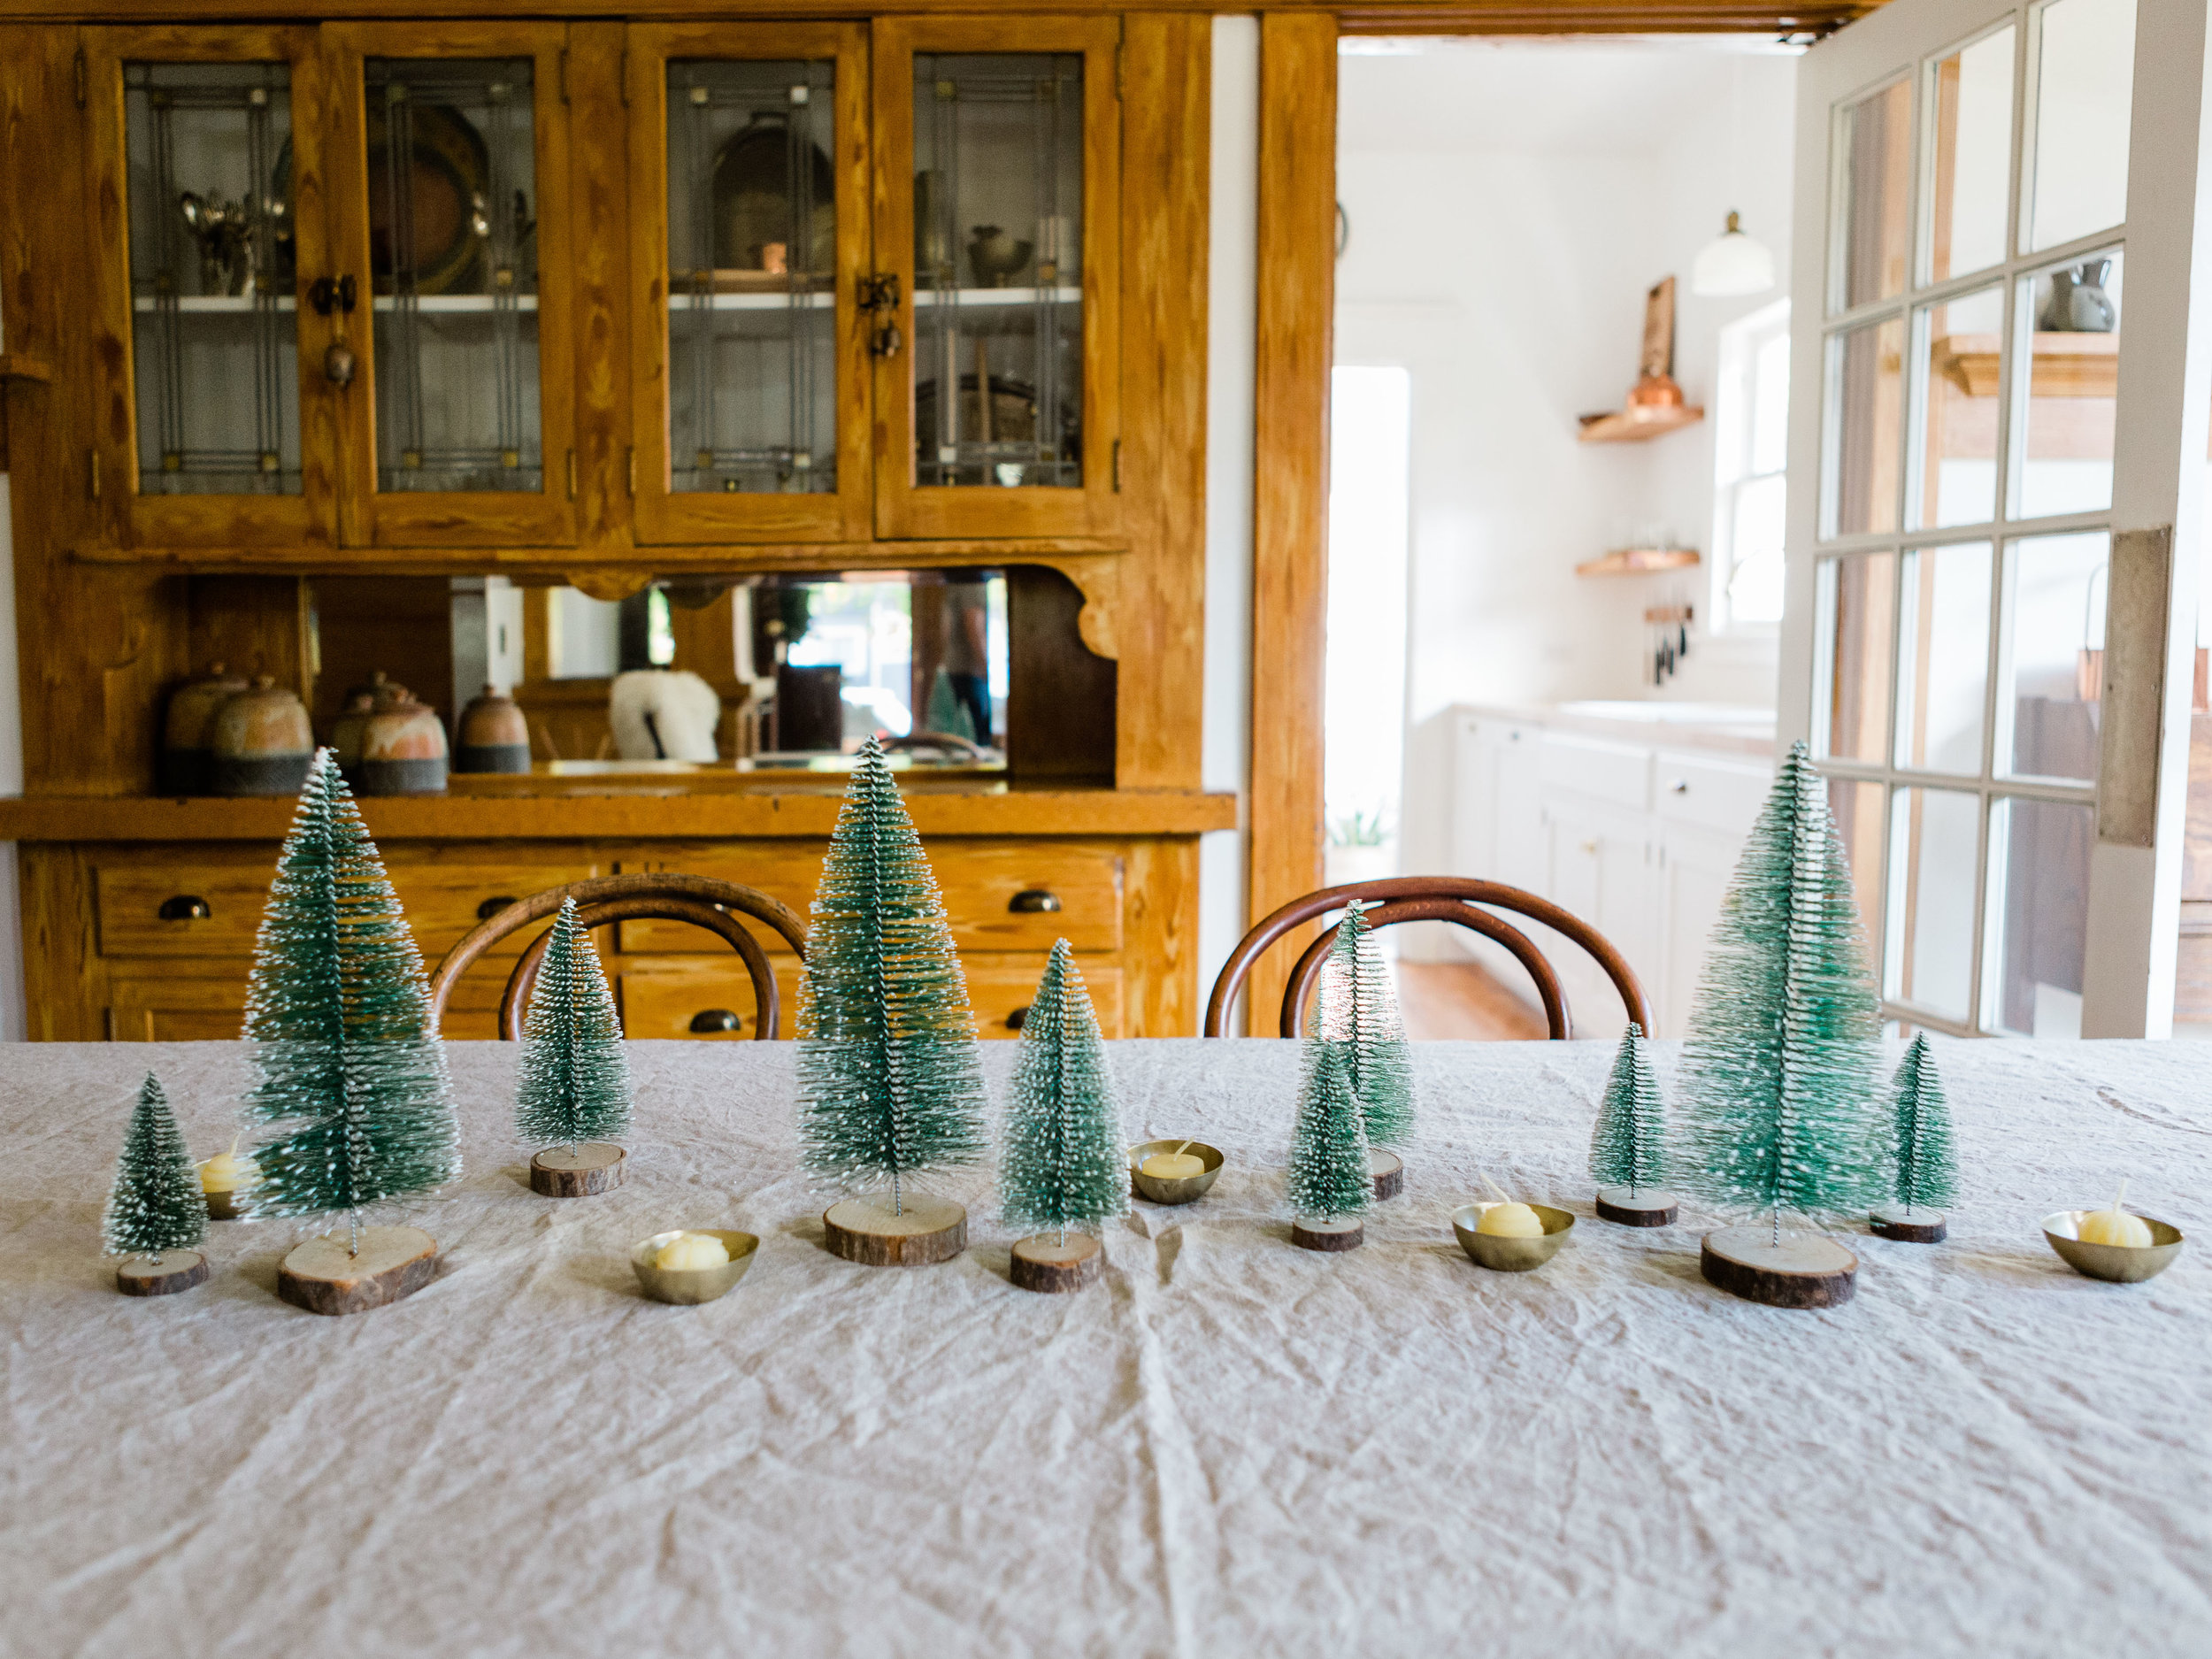 Bottle brush trees as holiday centerpiece from Foragedhome.com